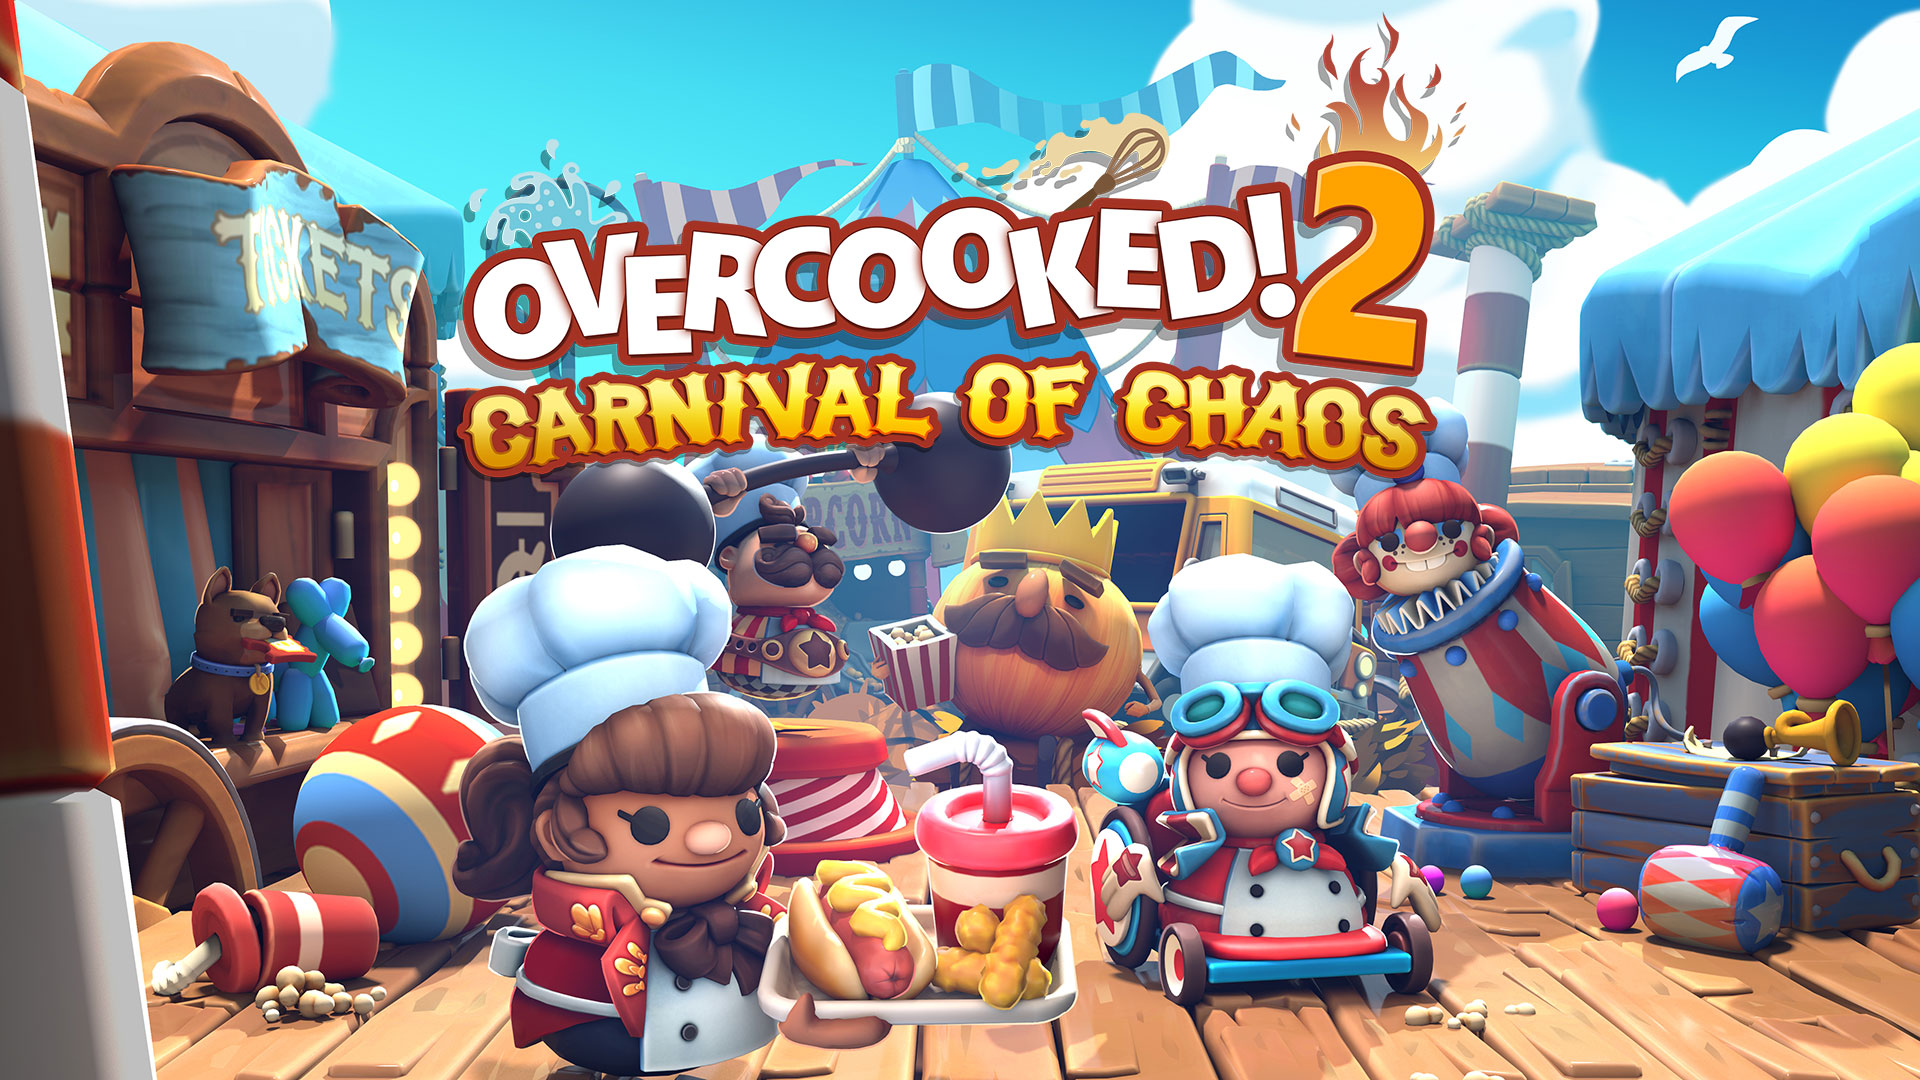 Overcooked! 2 – Introducing the 'Carnival of Chaos' DLC!